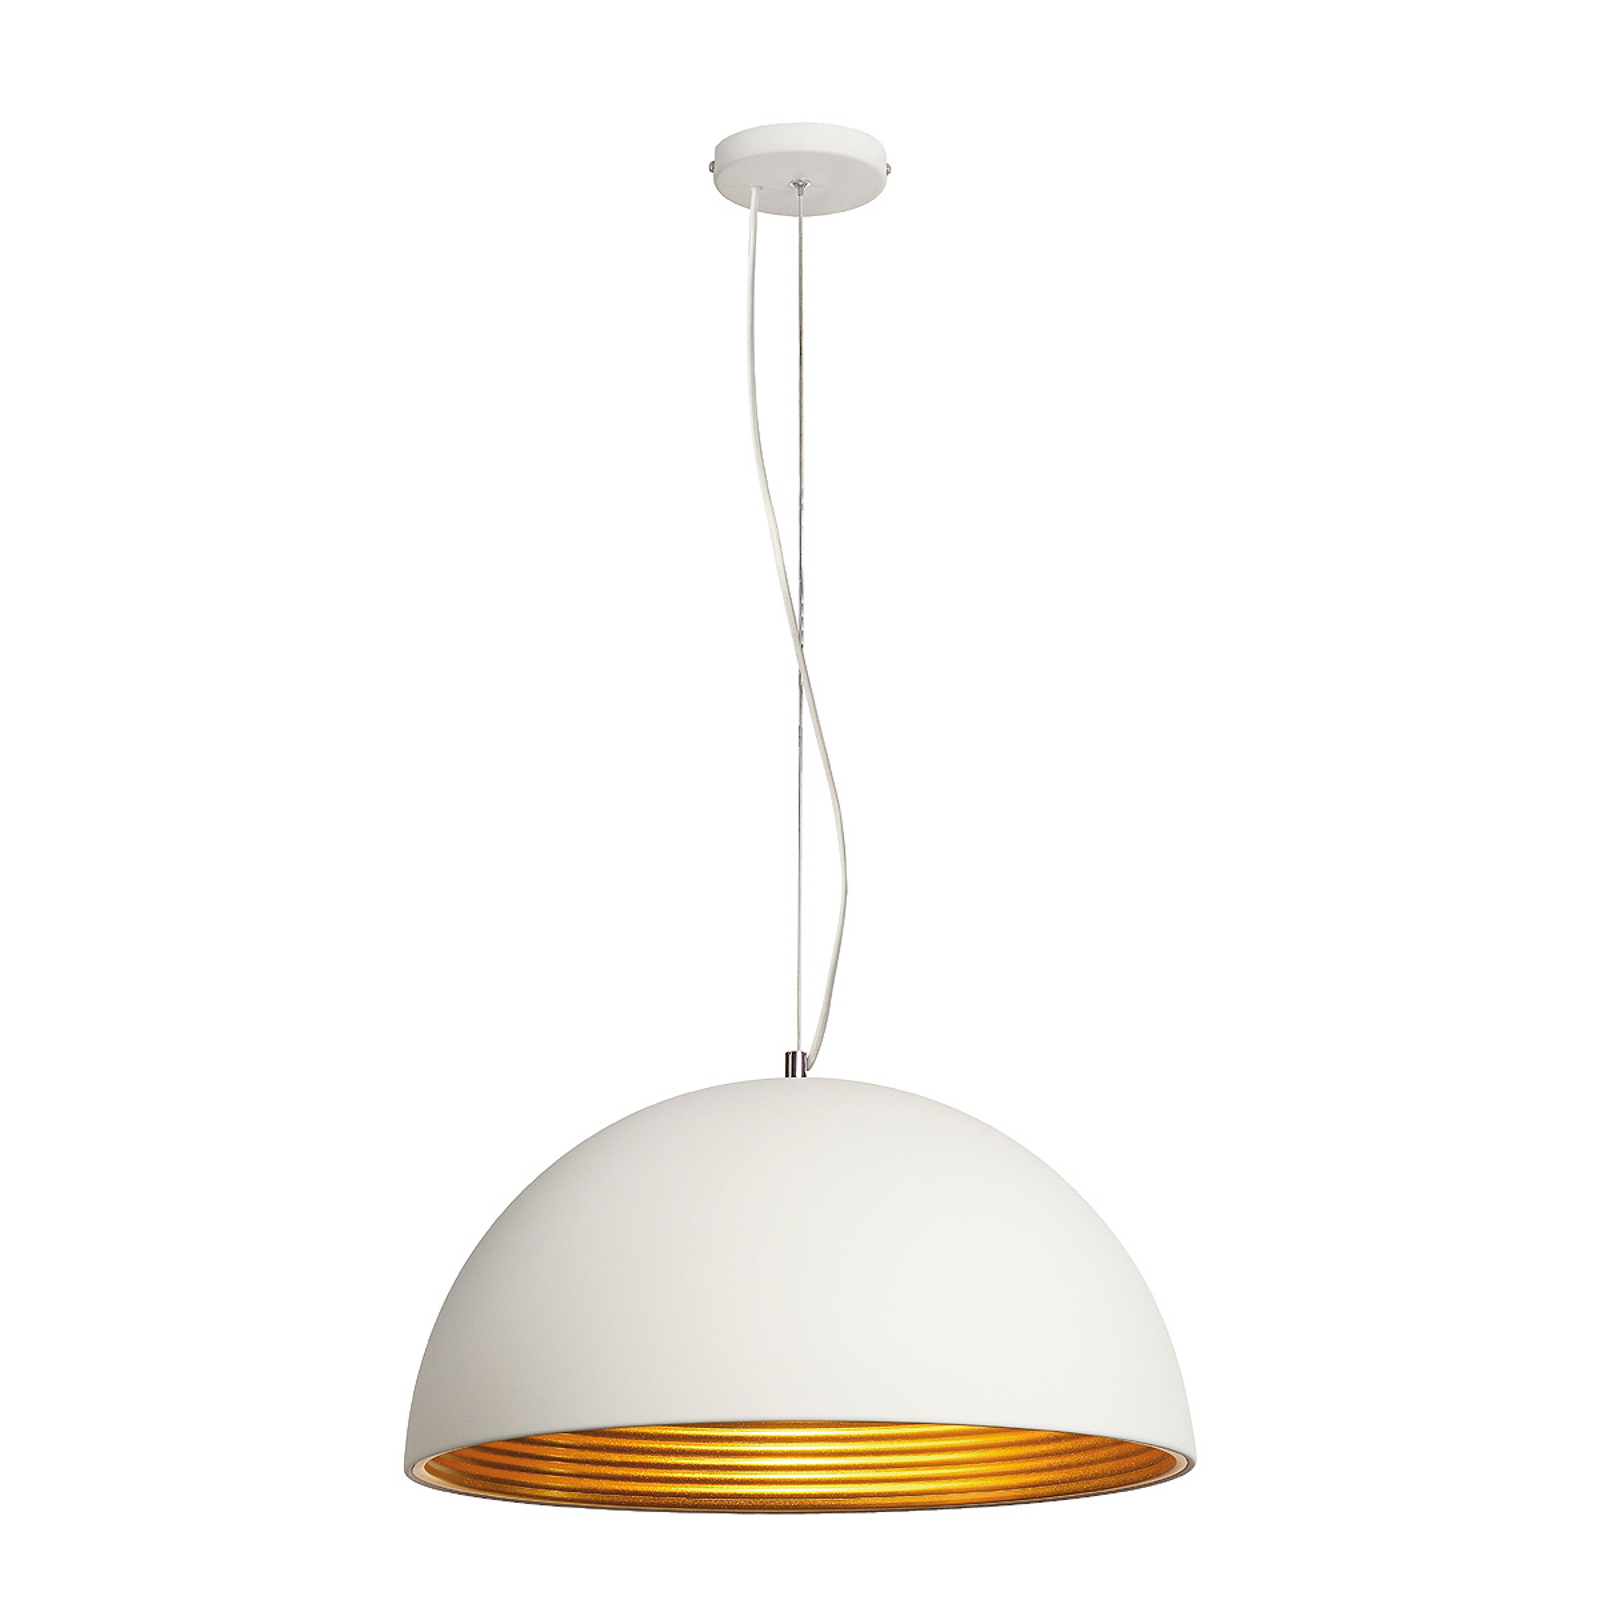 Forchini M pendellamp 50 cm wit goud